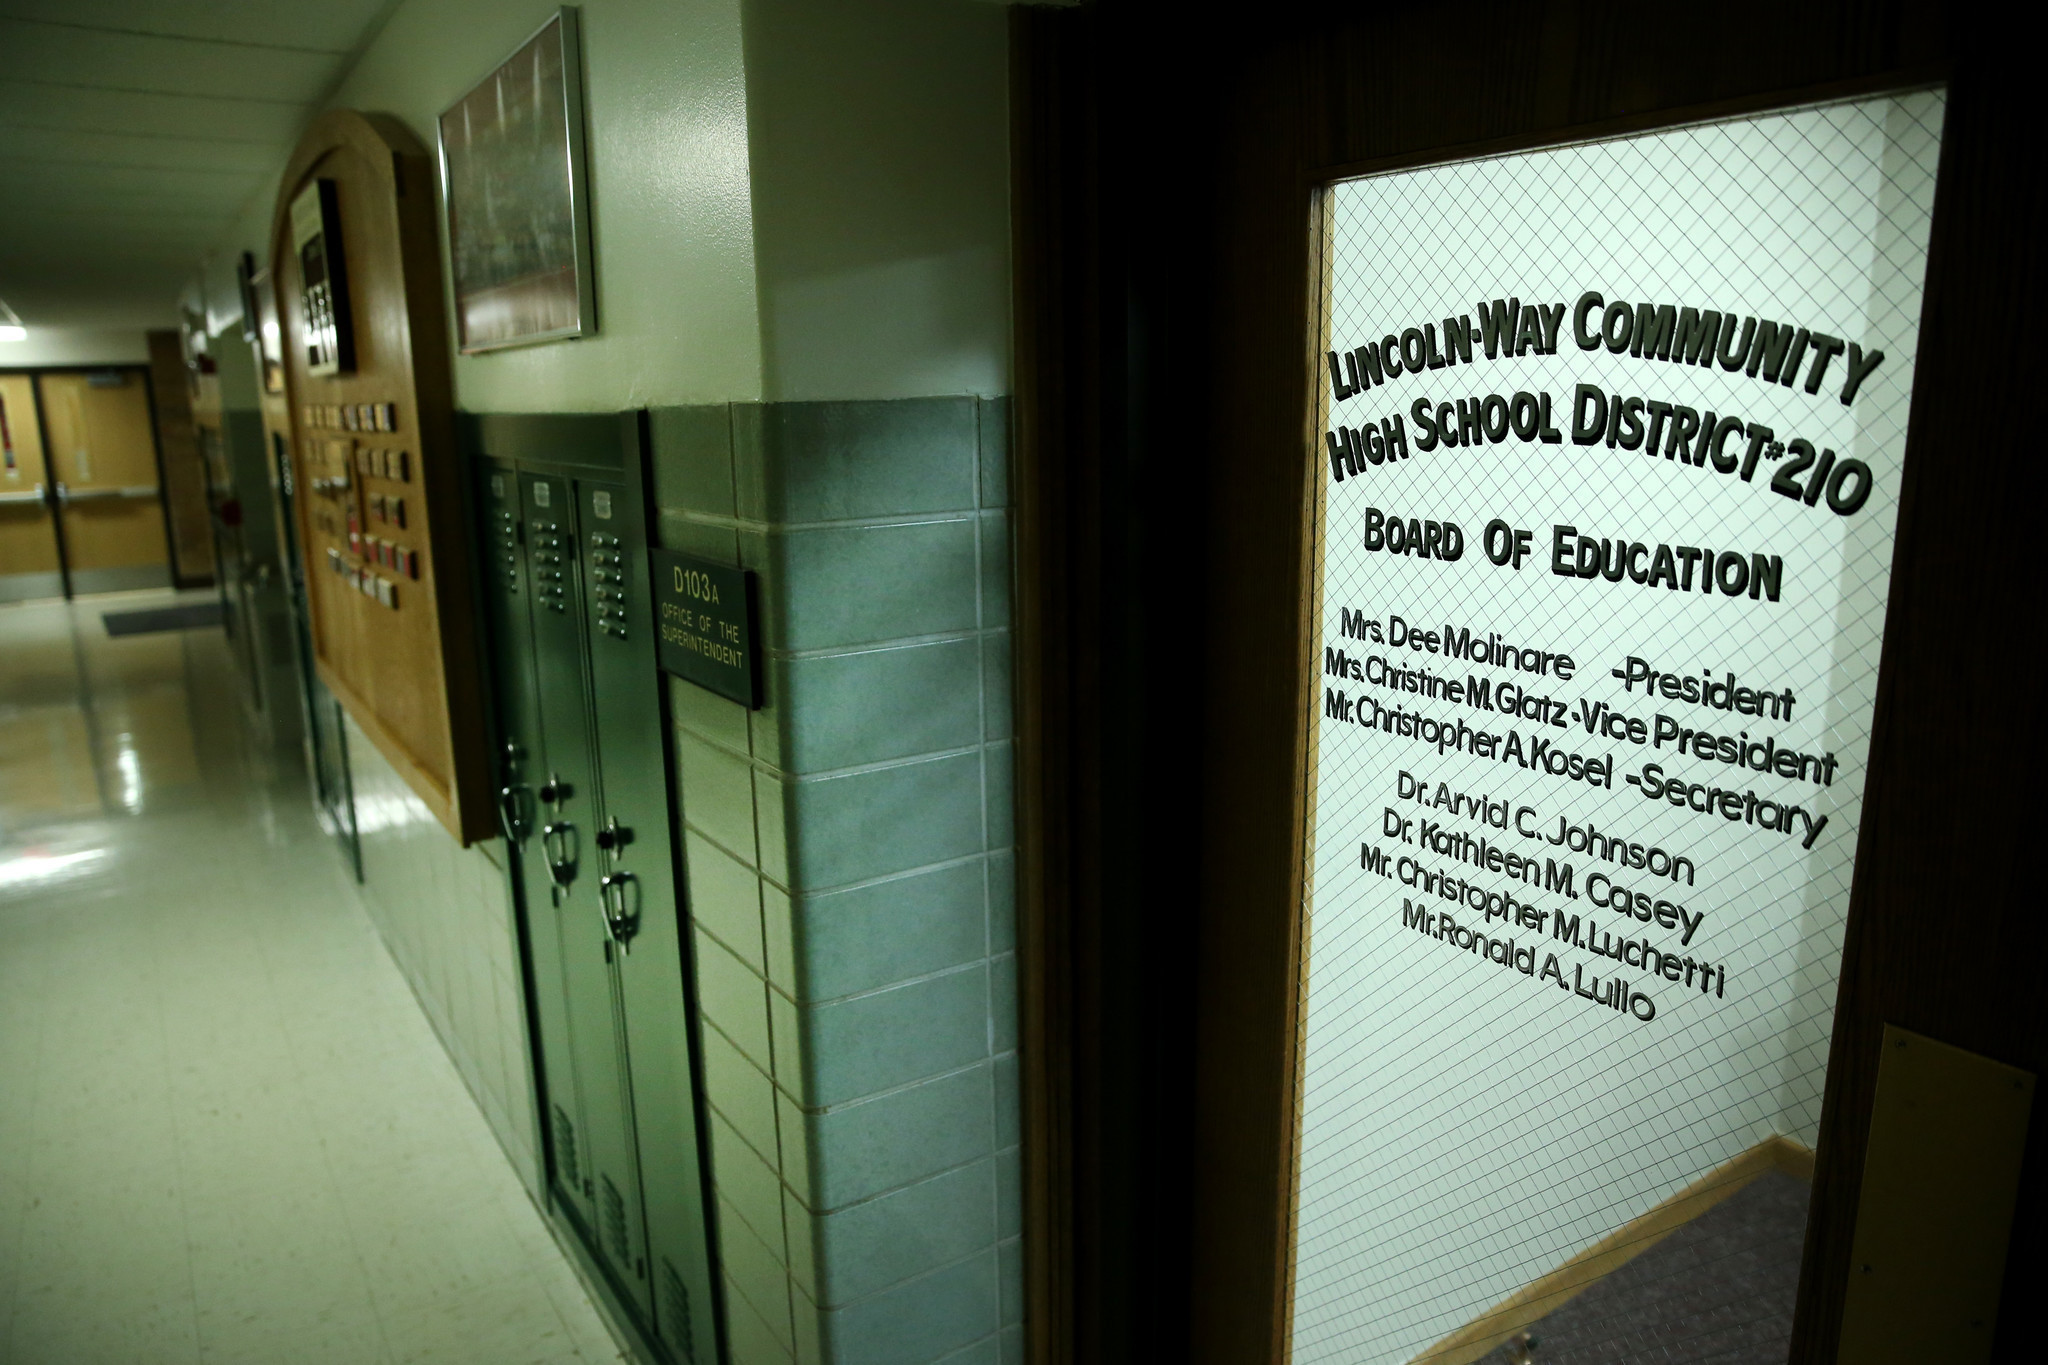 Lincoln Way Financial Decline Raises Questions About State